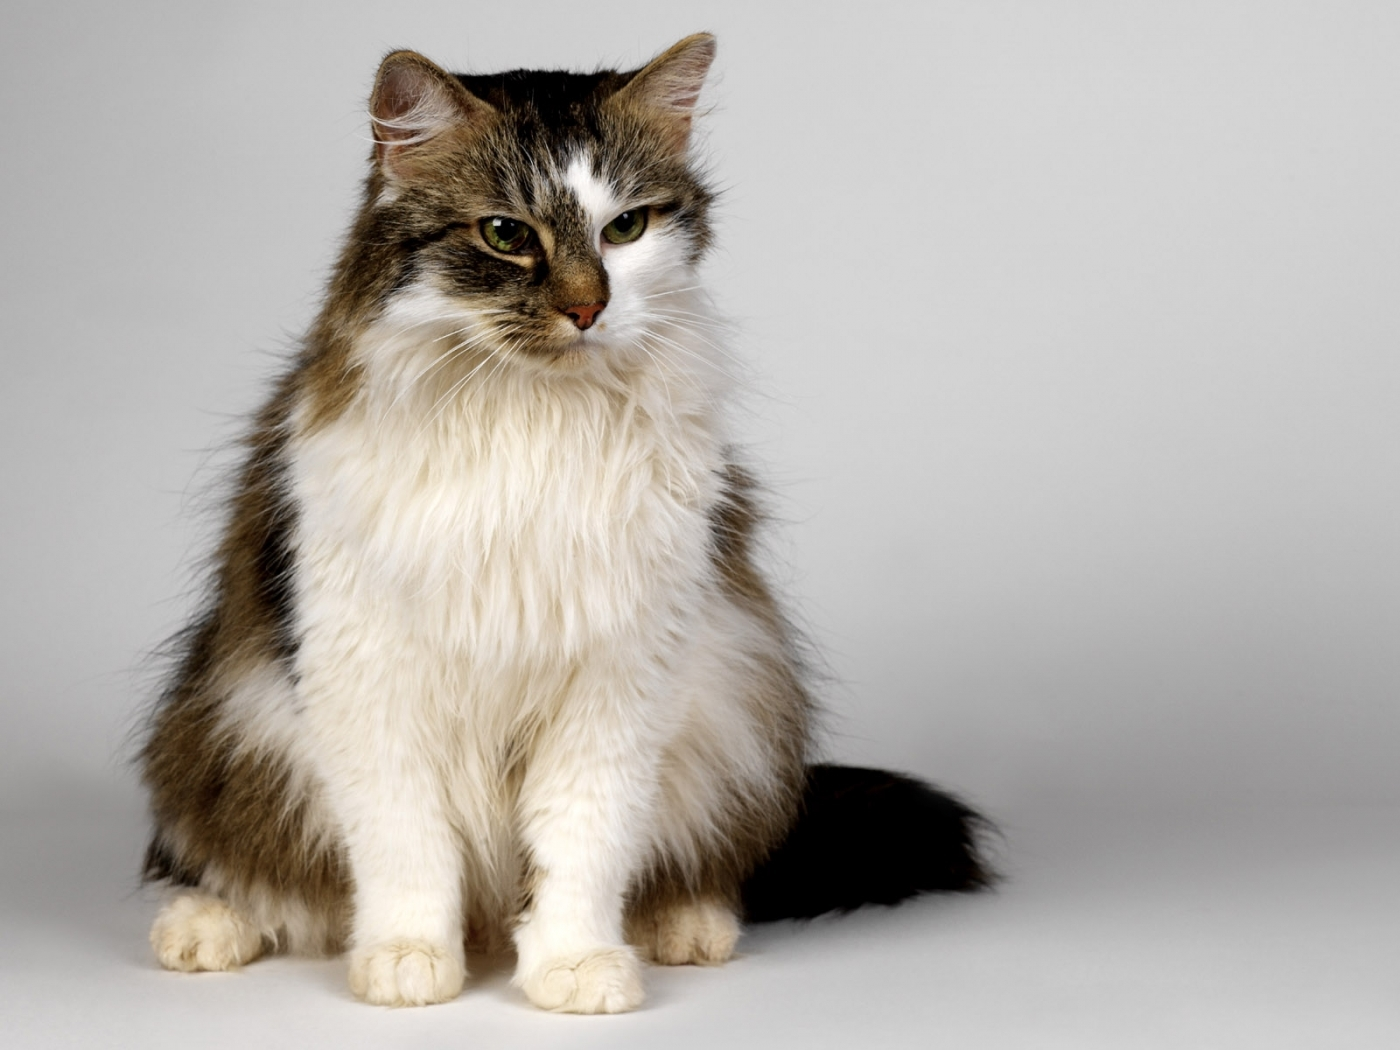 49525 download wallpaper Animals, Cats screensavers and pictures for free